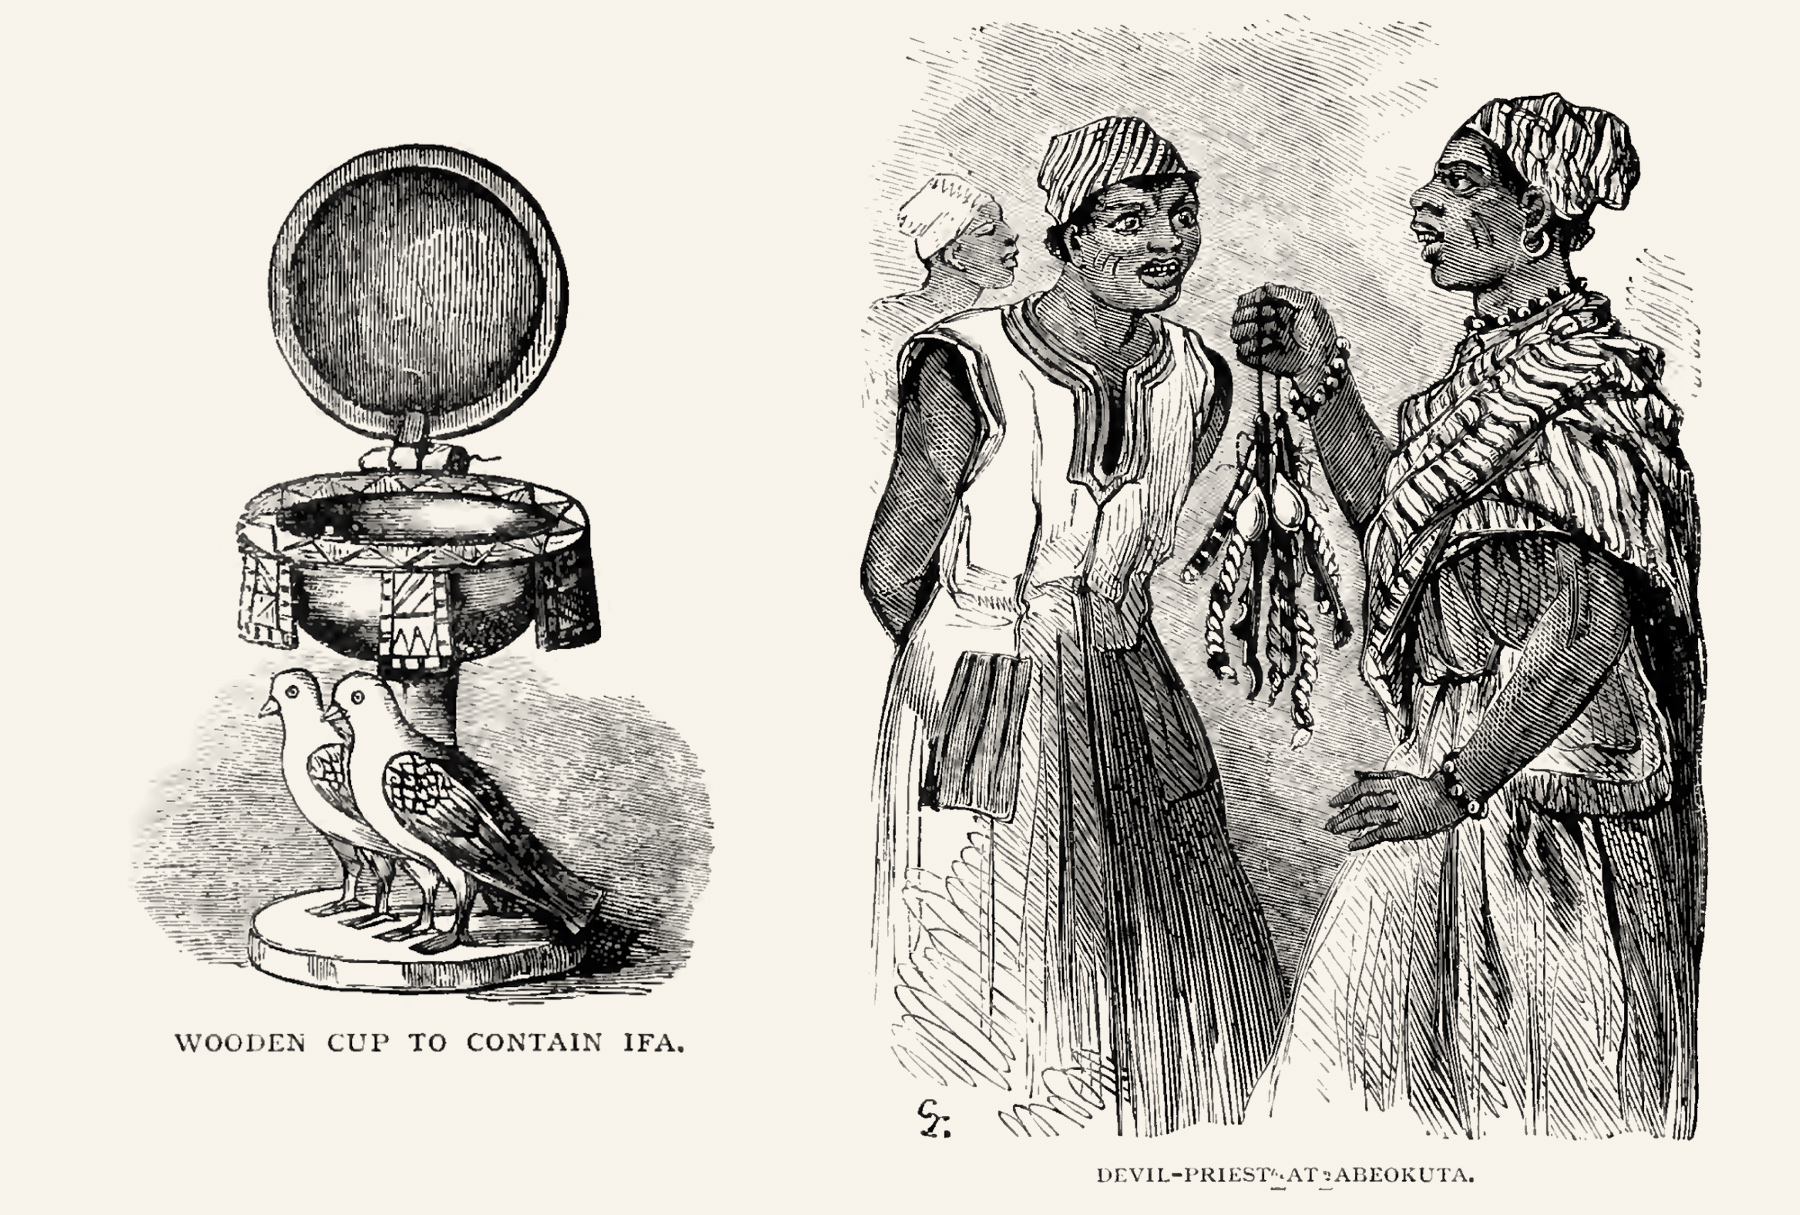 """Left how the illustrator imagined a carved, hinged Ifá bowl to look like, probably from a verbal description. Right a """"fetish-priest"""" of ÈṣùẸlẹ́gbára, the so-called """"devil priest"""" in Abeokuta. It was at that time that Èṣù became falsely equated to the Christian concept of the devil through the use of his name in the Yorùbá bible. No other Orisha names were used, just Èṣù's name, what makes all Olorisha to devil worshippers today in Nigeria. ."""